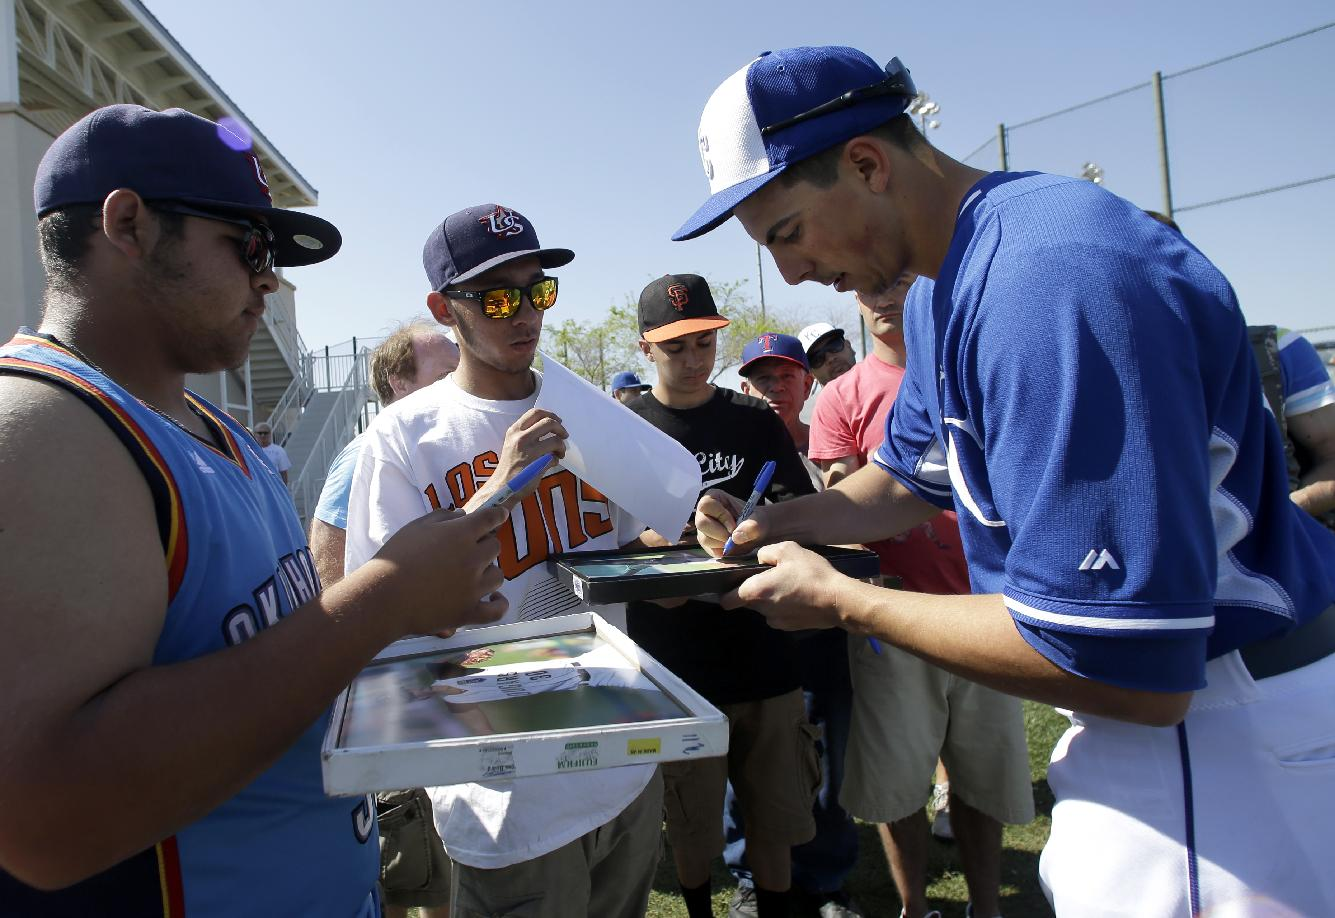 Kansas City Royals' Kyle Zimmer signs autographs for fans after a morning workout during spring baseball practice, Friday, March 7, 2014, in Surprise, Ariz